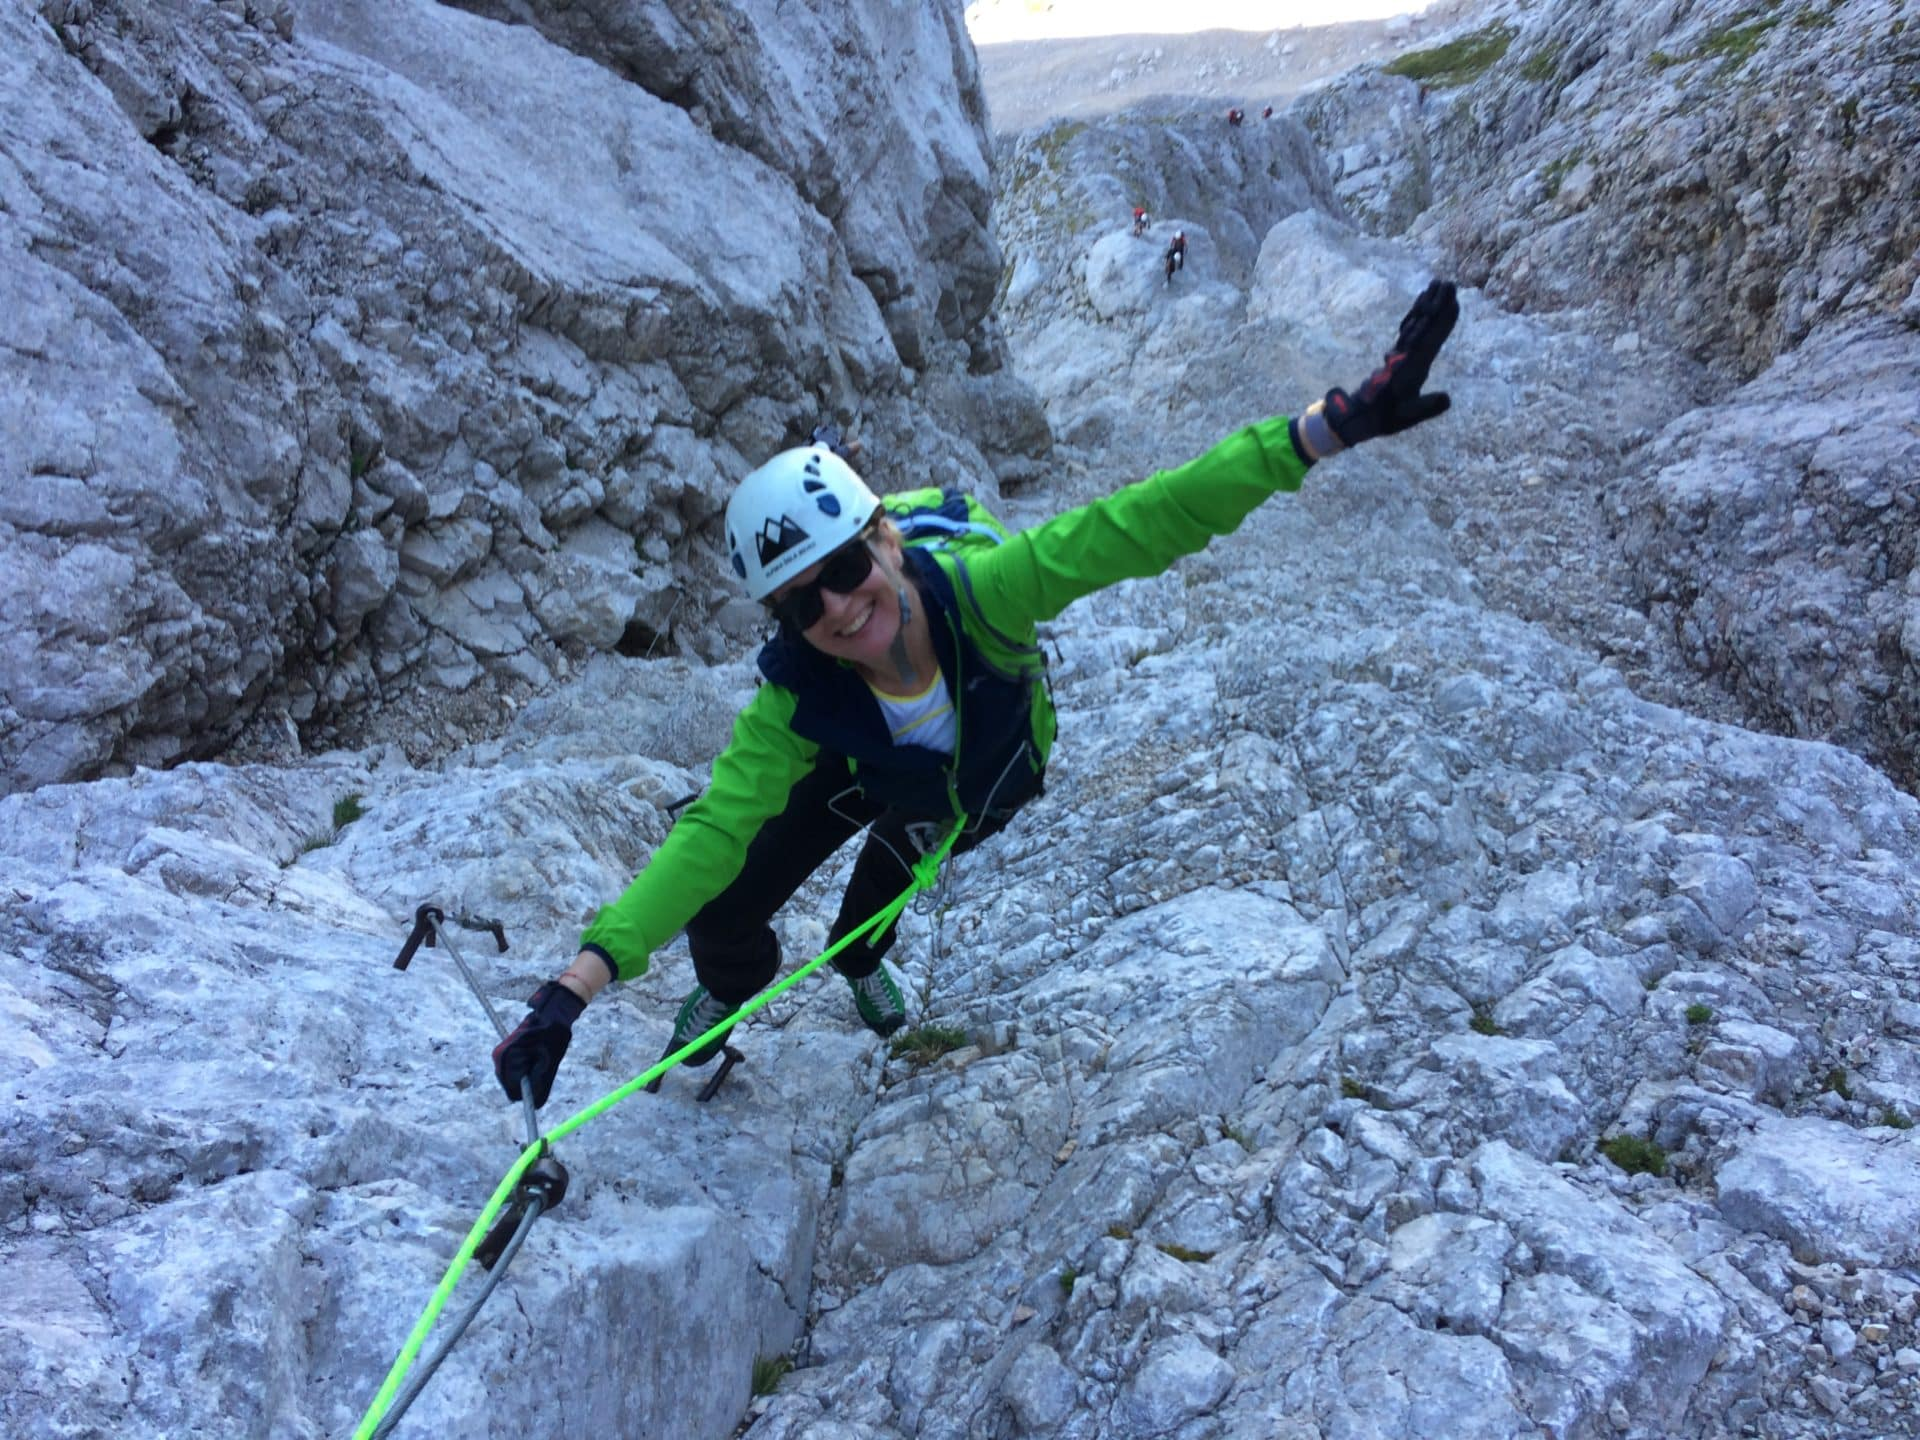 Mt Mangart via ferrata, Slovenian side